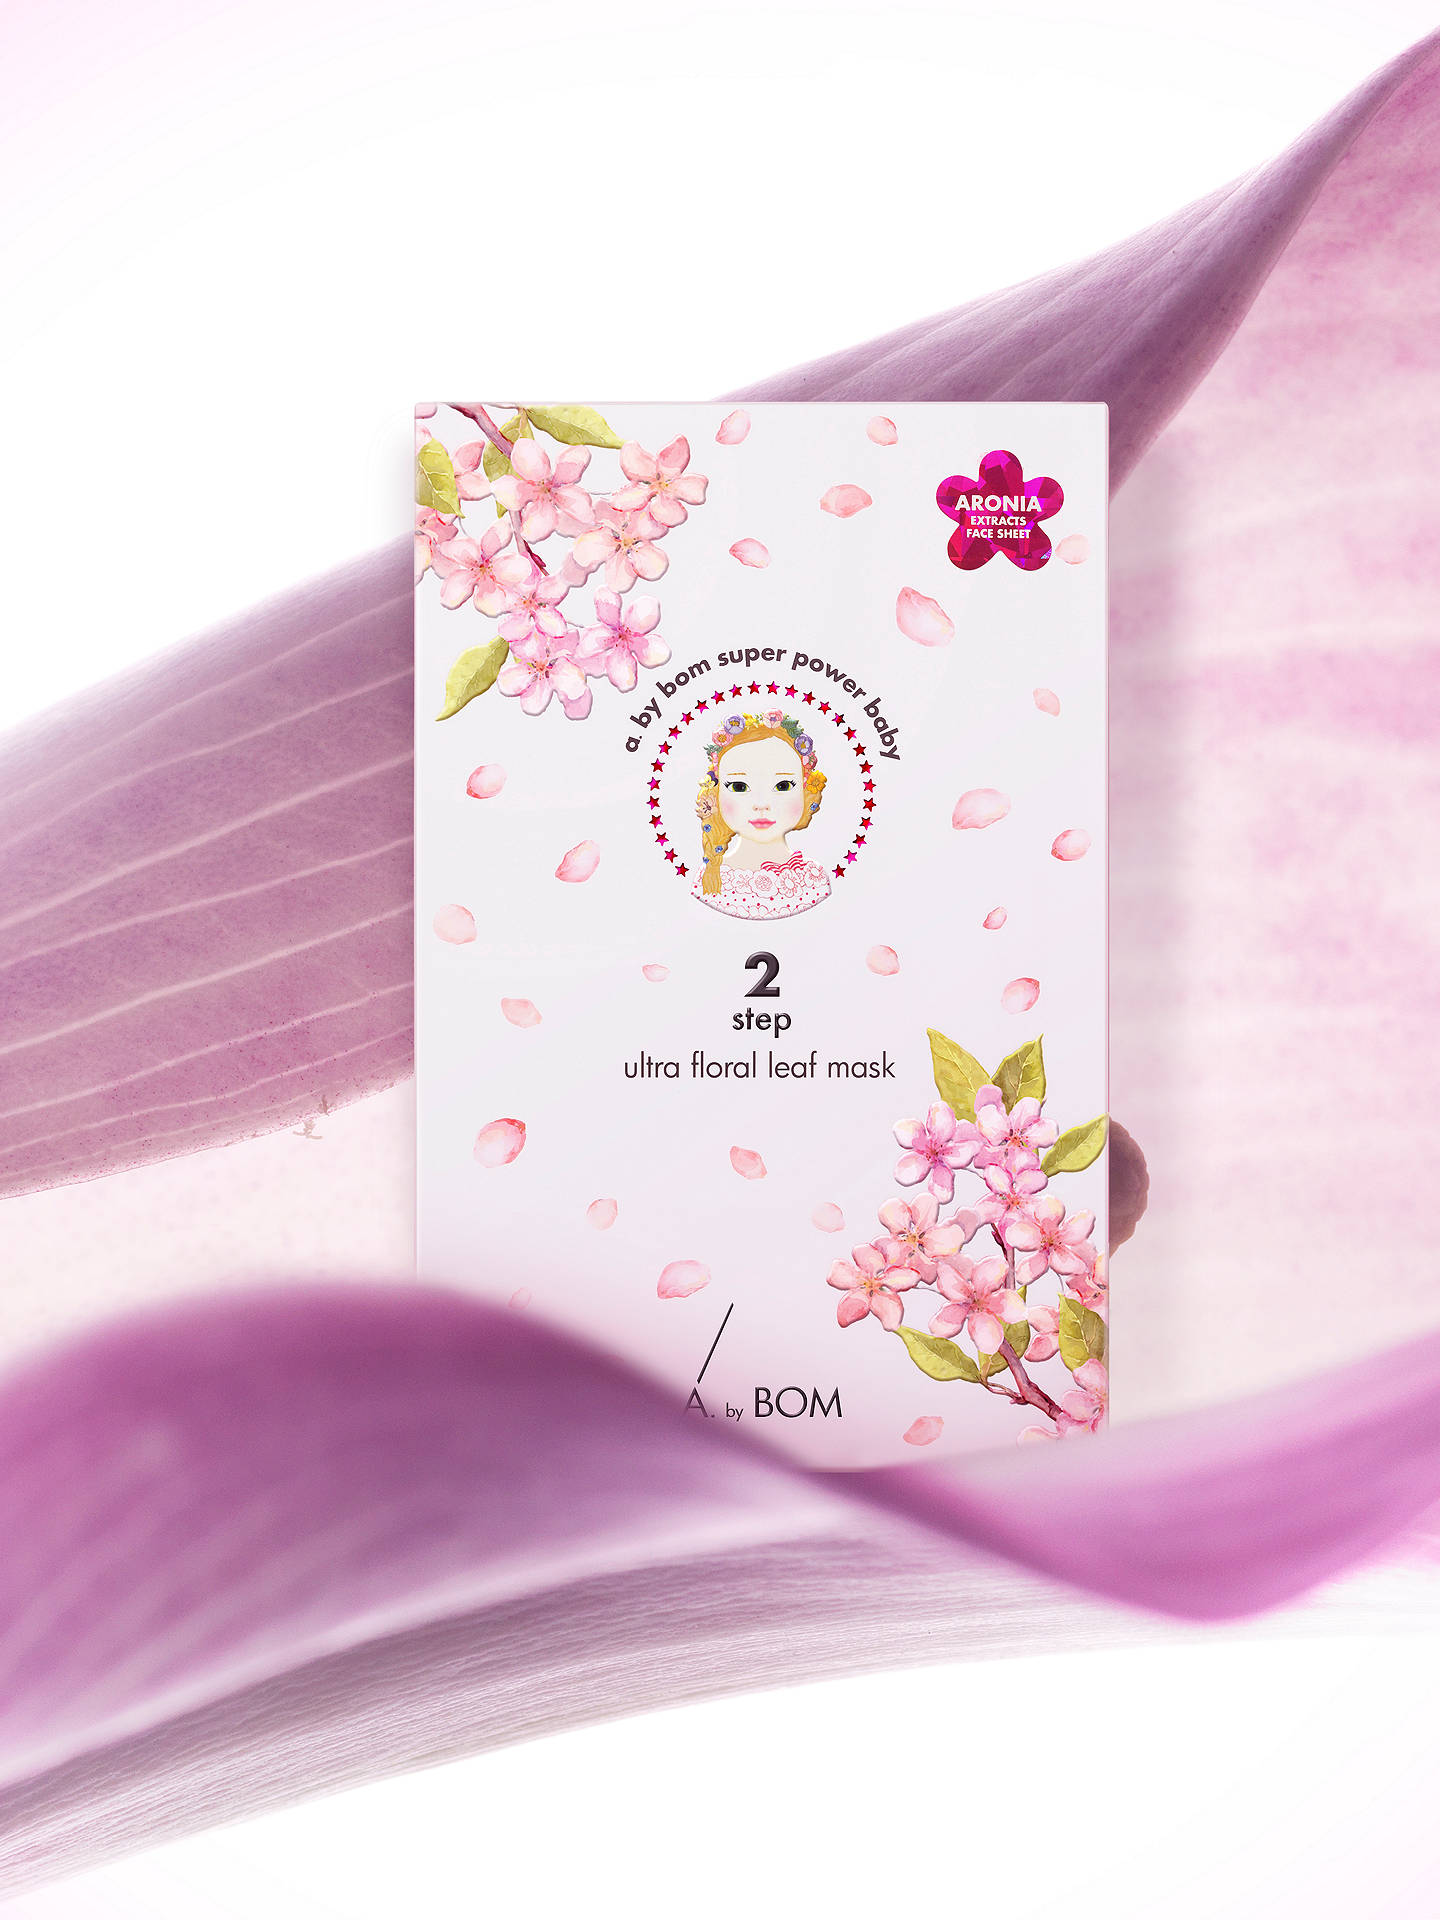 Buy A. by BOM 2-Step Ultra Floral Leaf Face Mask Online at johnlewis.com